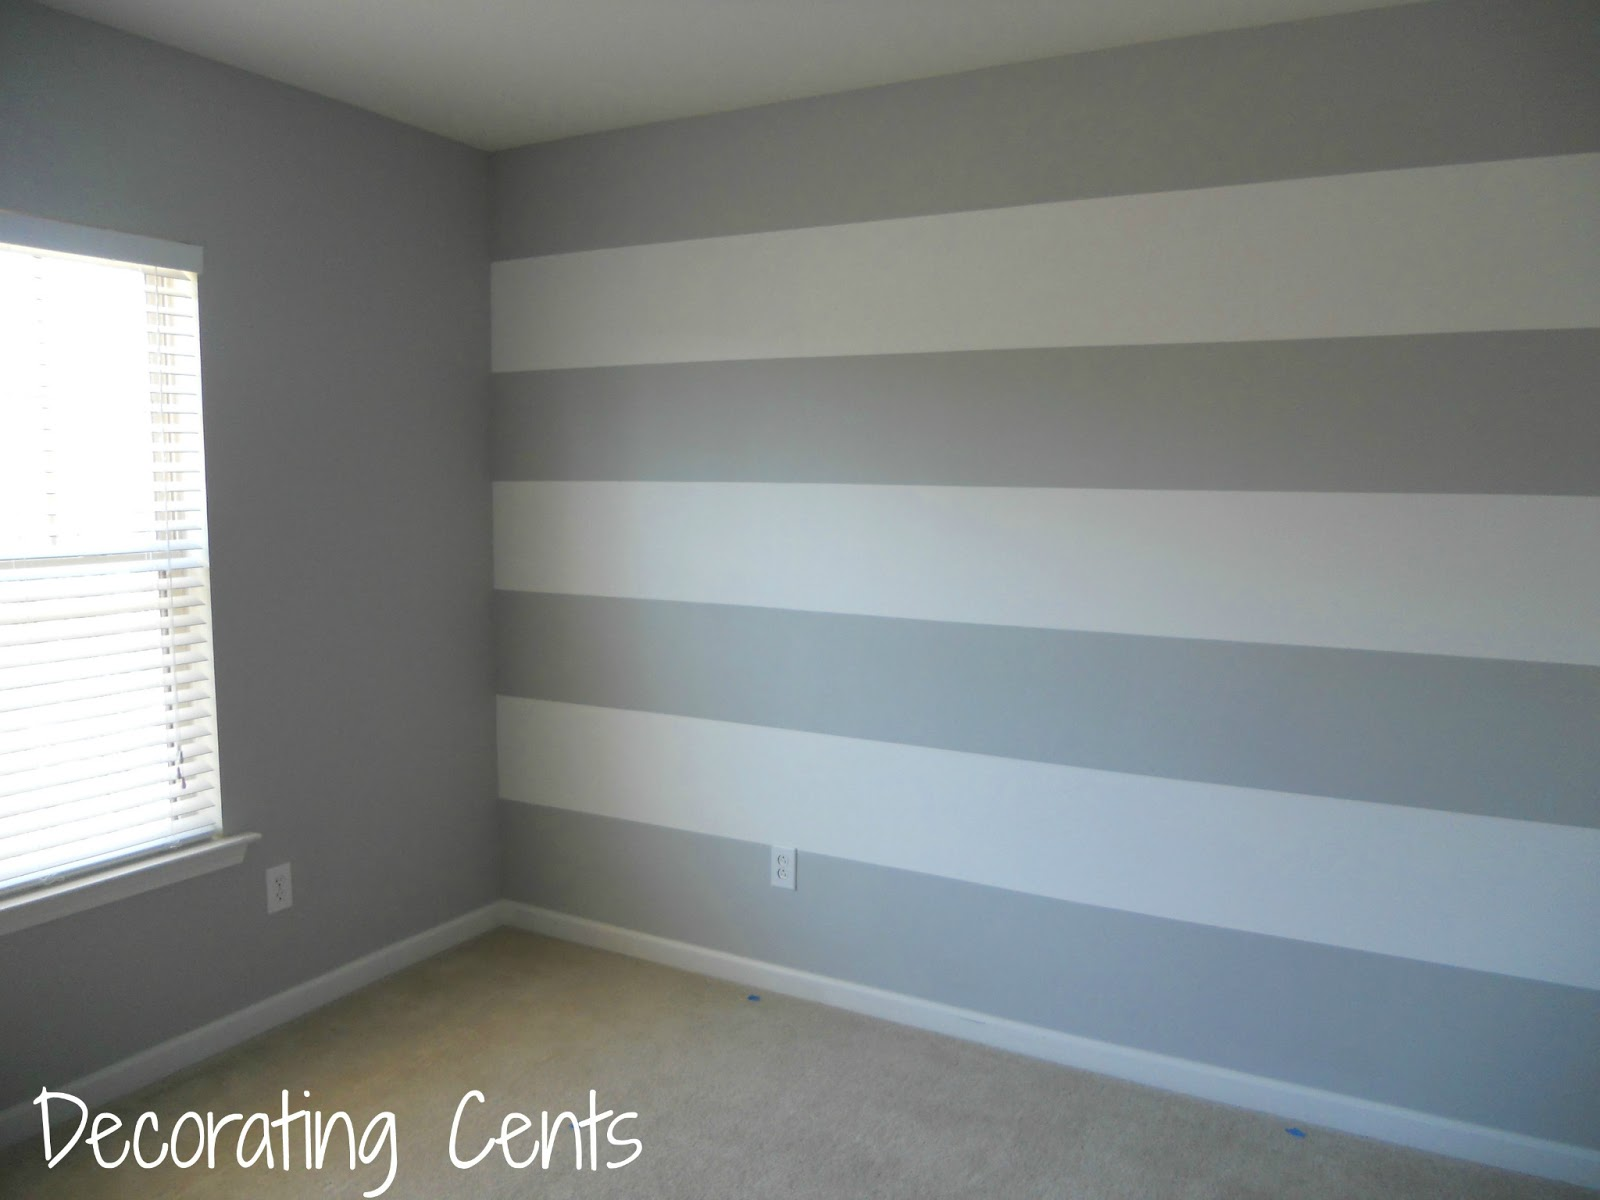 Decorating cents painting a striped wall How to paint a bedroom wall